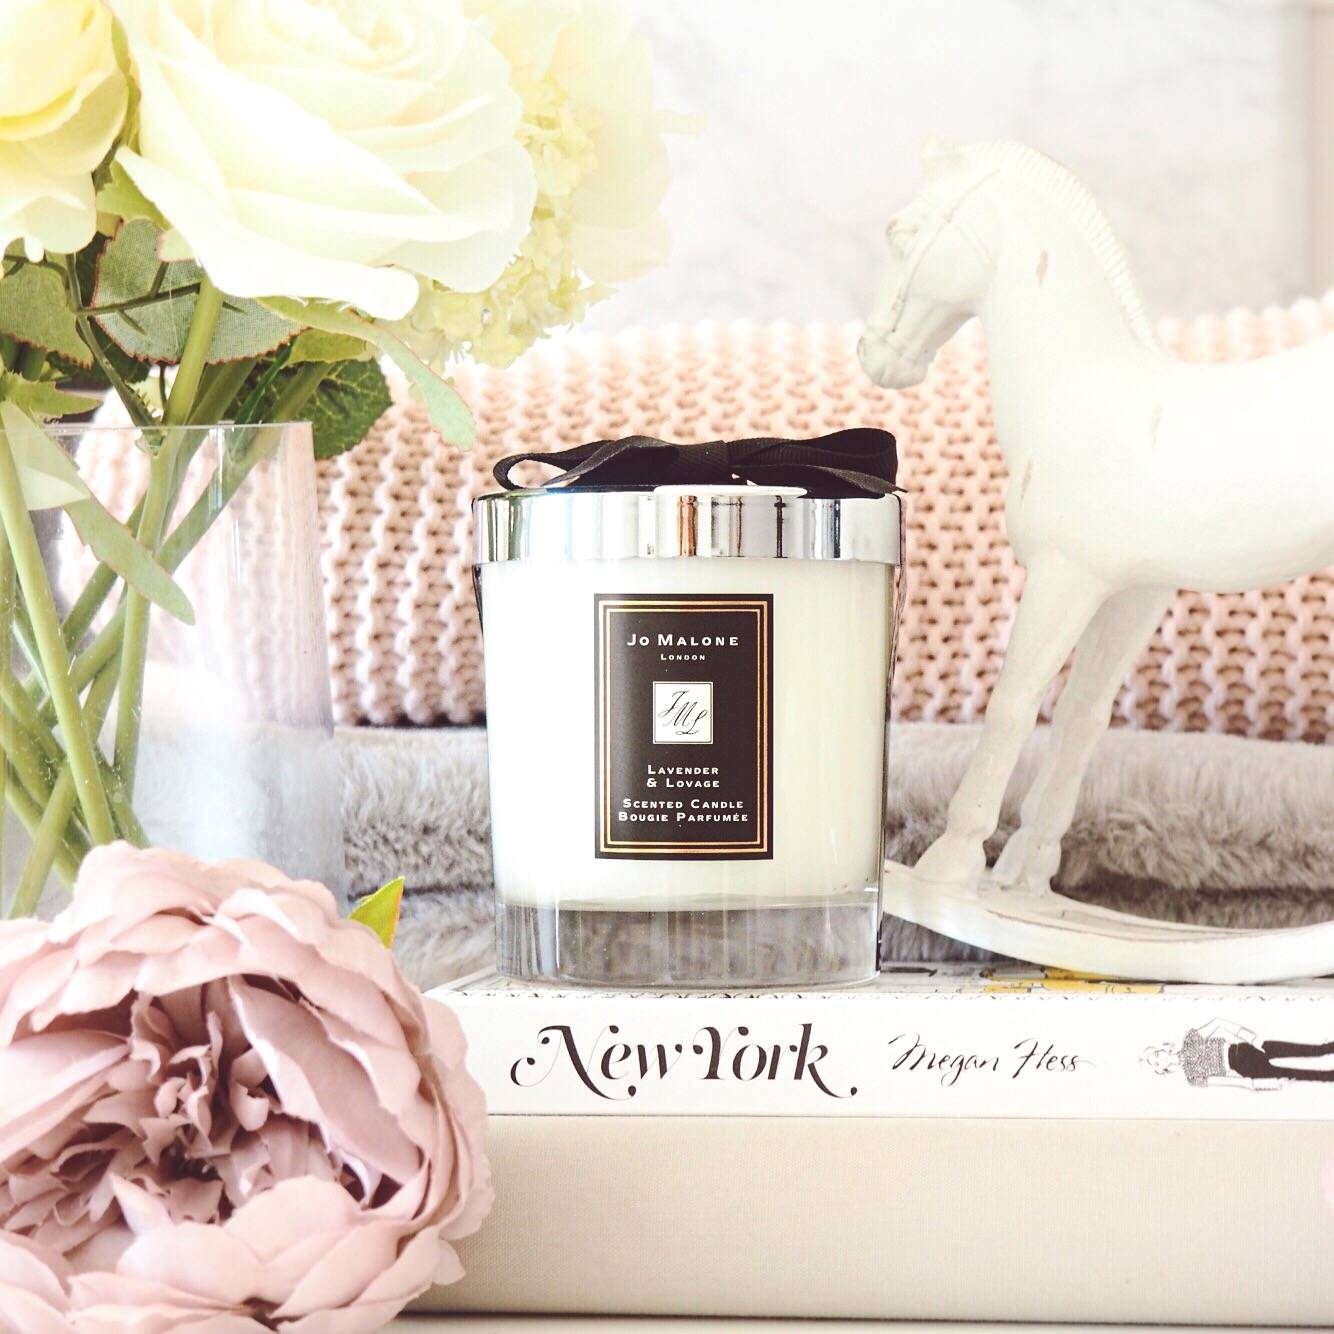 Jo Malone Lavender and Lovage Review